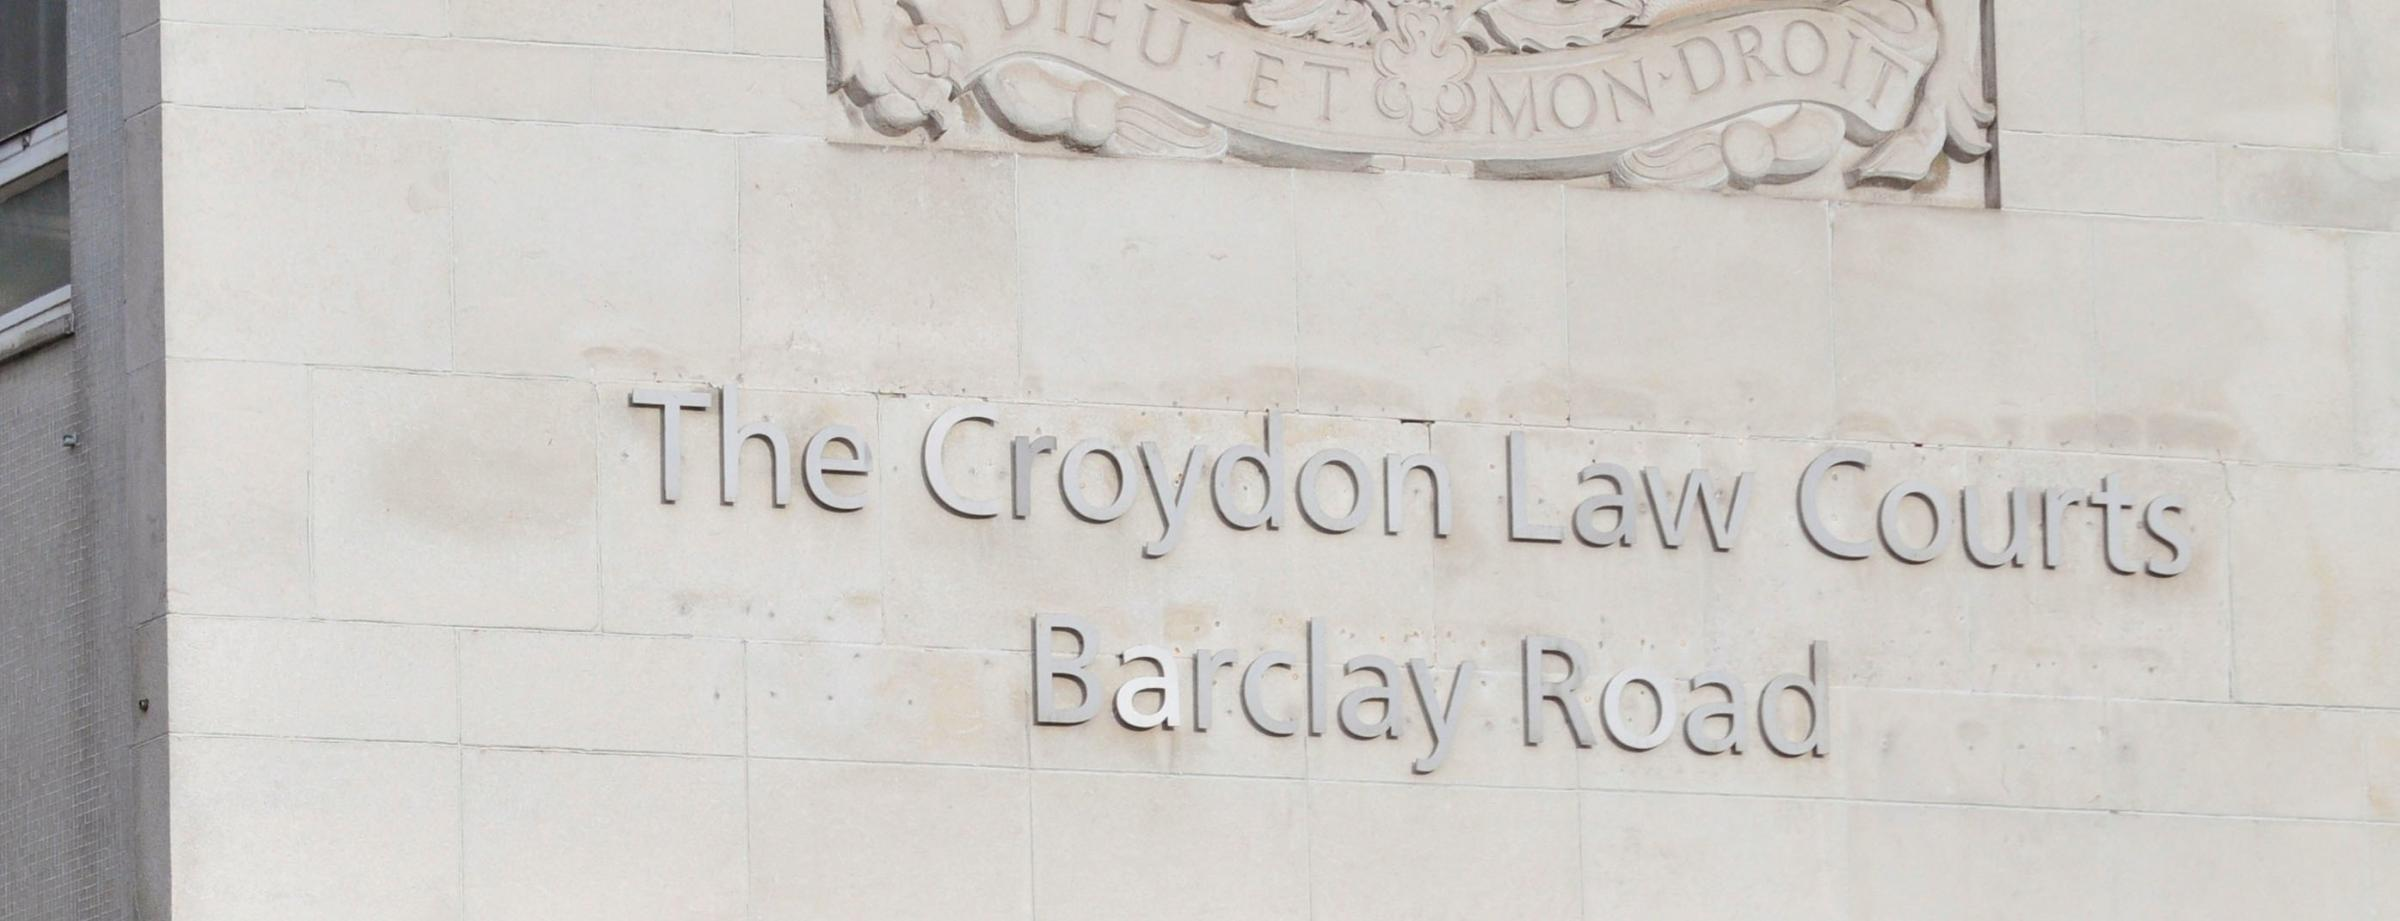 The walkout took place at Croydon Law Courts